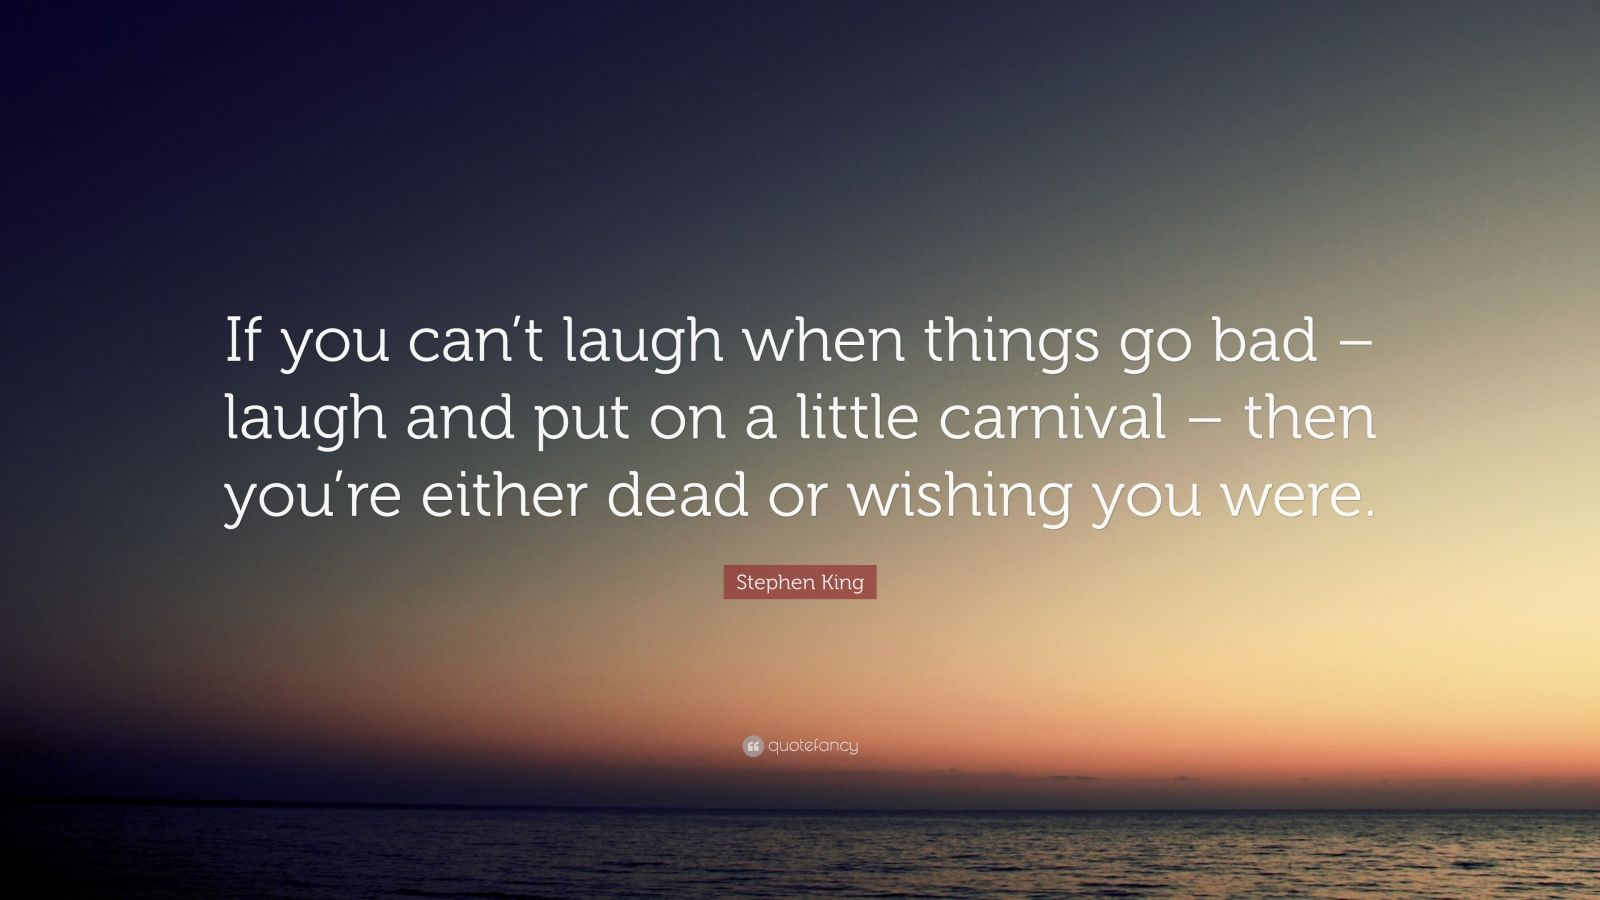 """Stephen King Quote: """"If you can't laugh when things go bad – laugh and put on a little carnival – then you're either dead or wishing you were."""""""